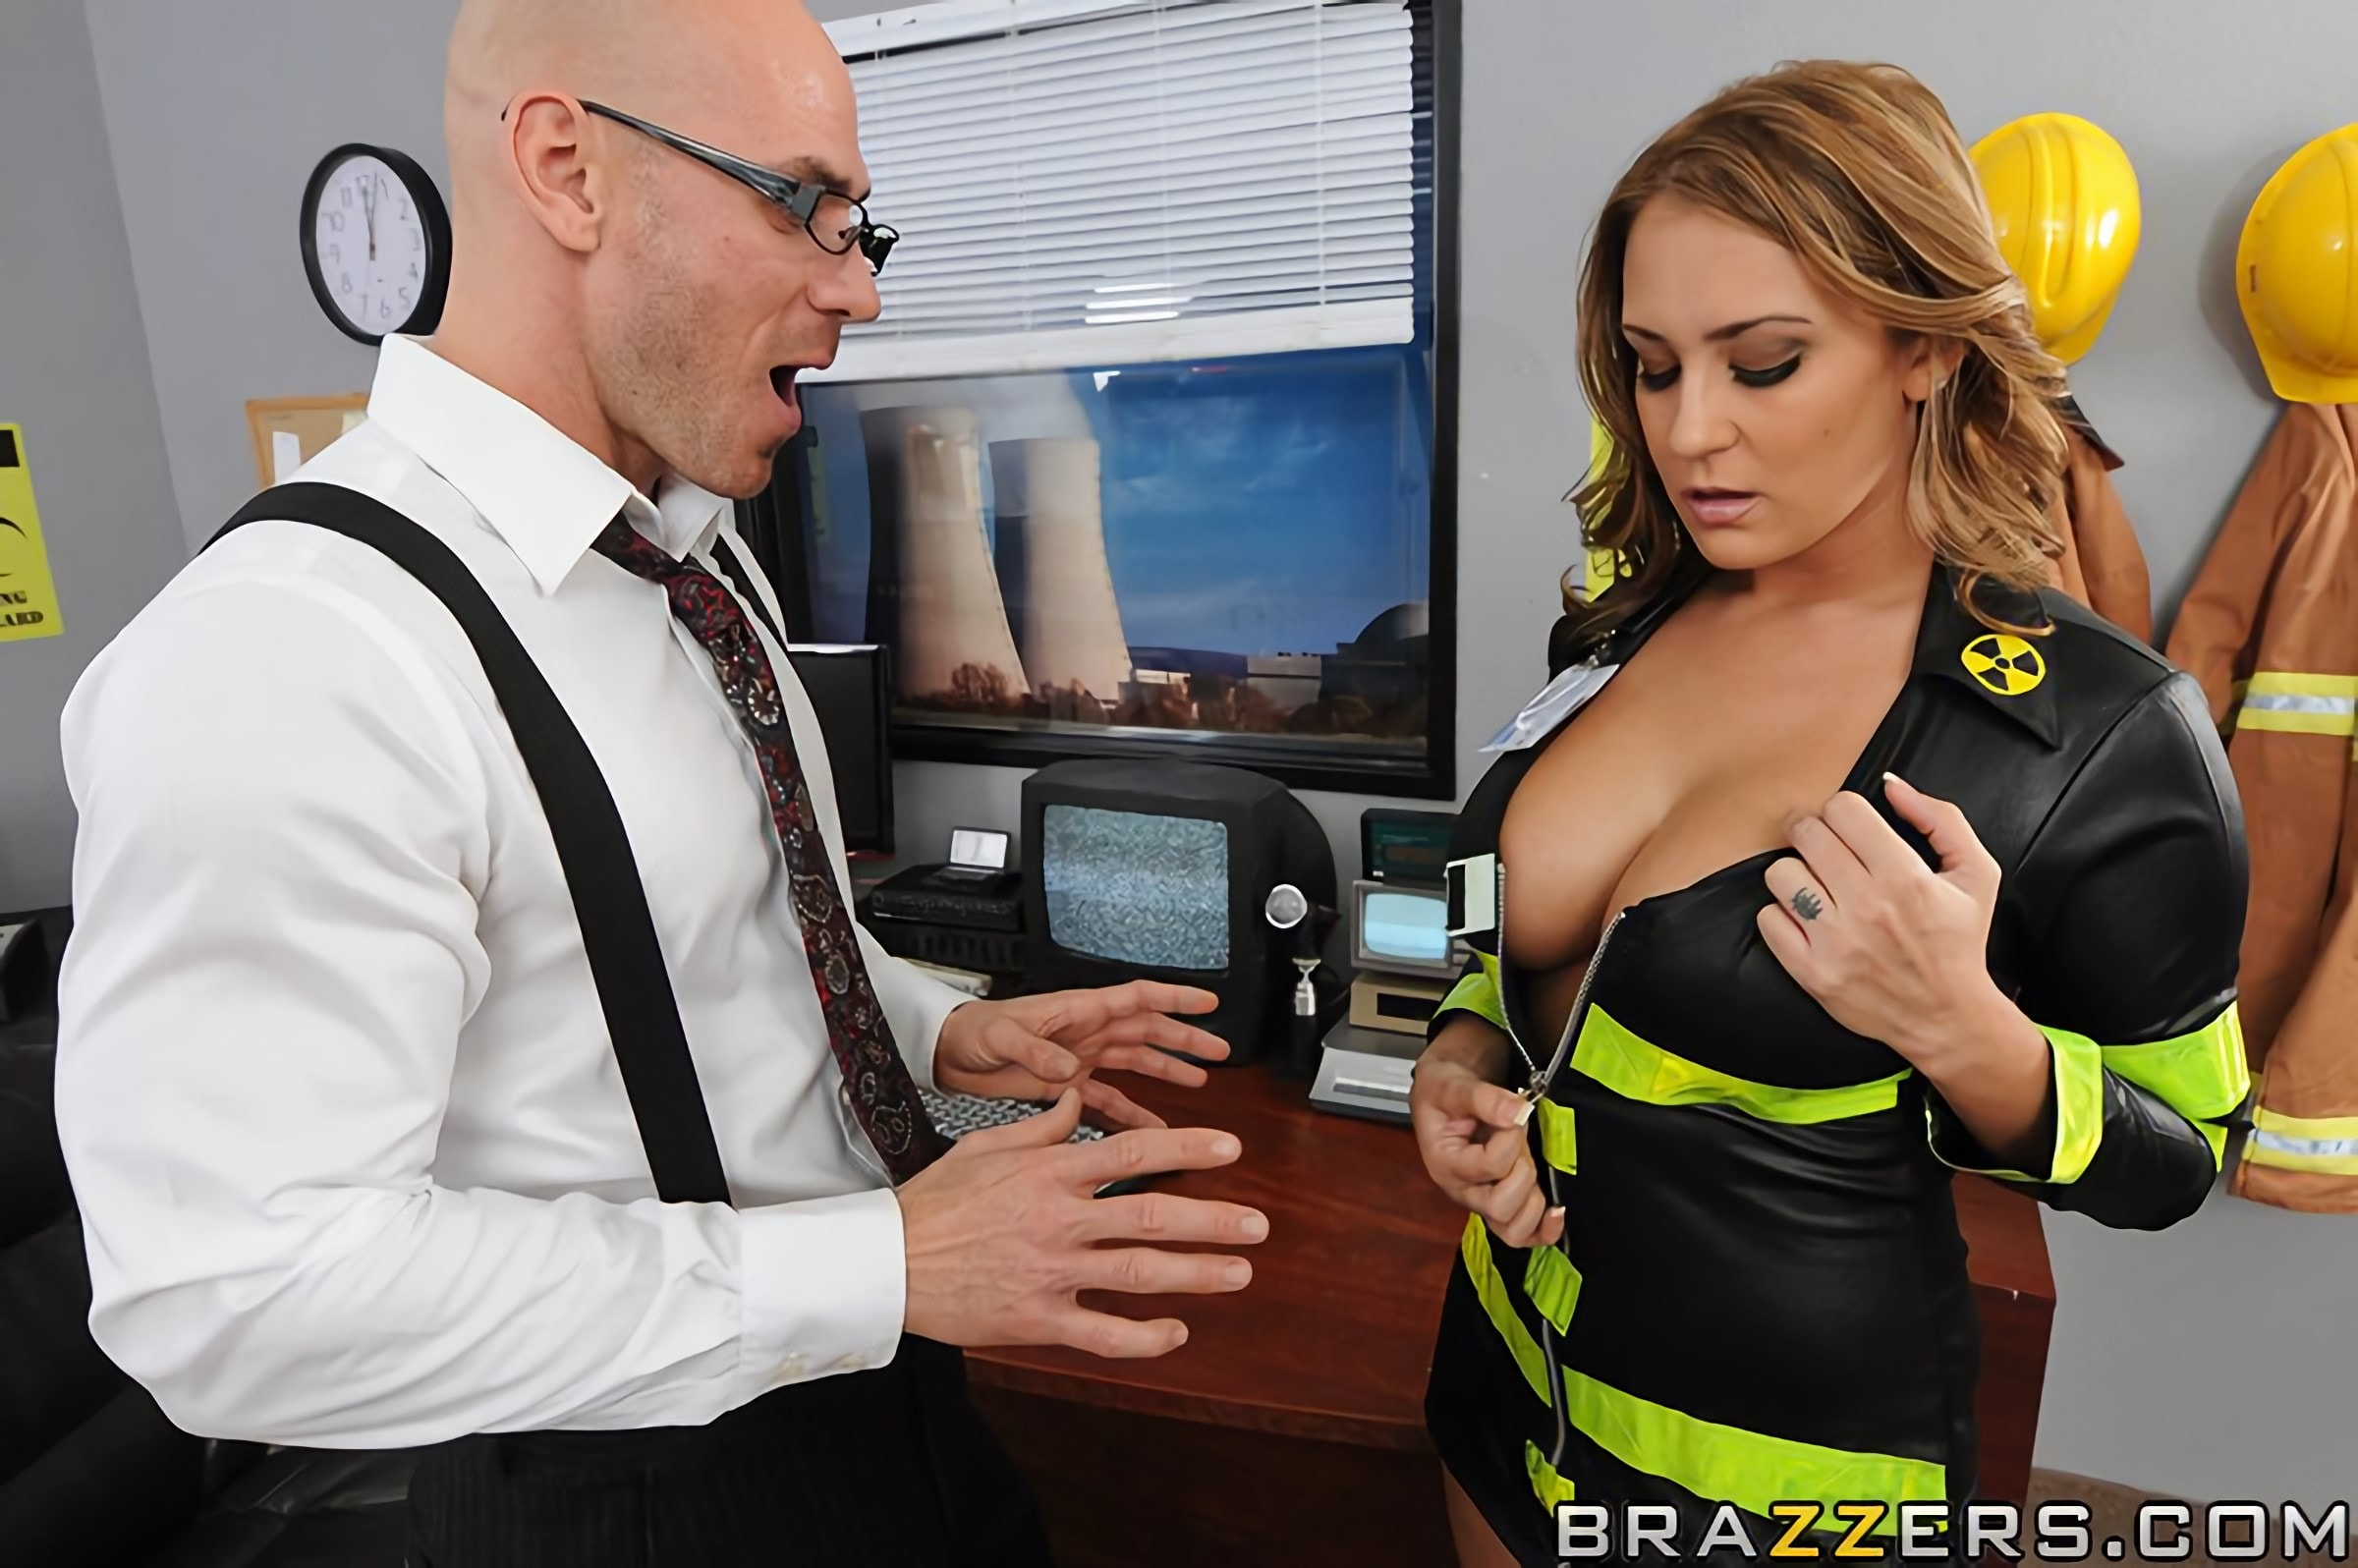 Brazzers 'Nuclear Tits' starring Trina Michaels (Photo 7)